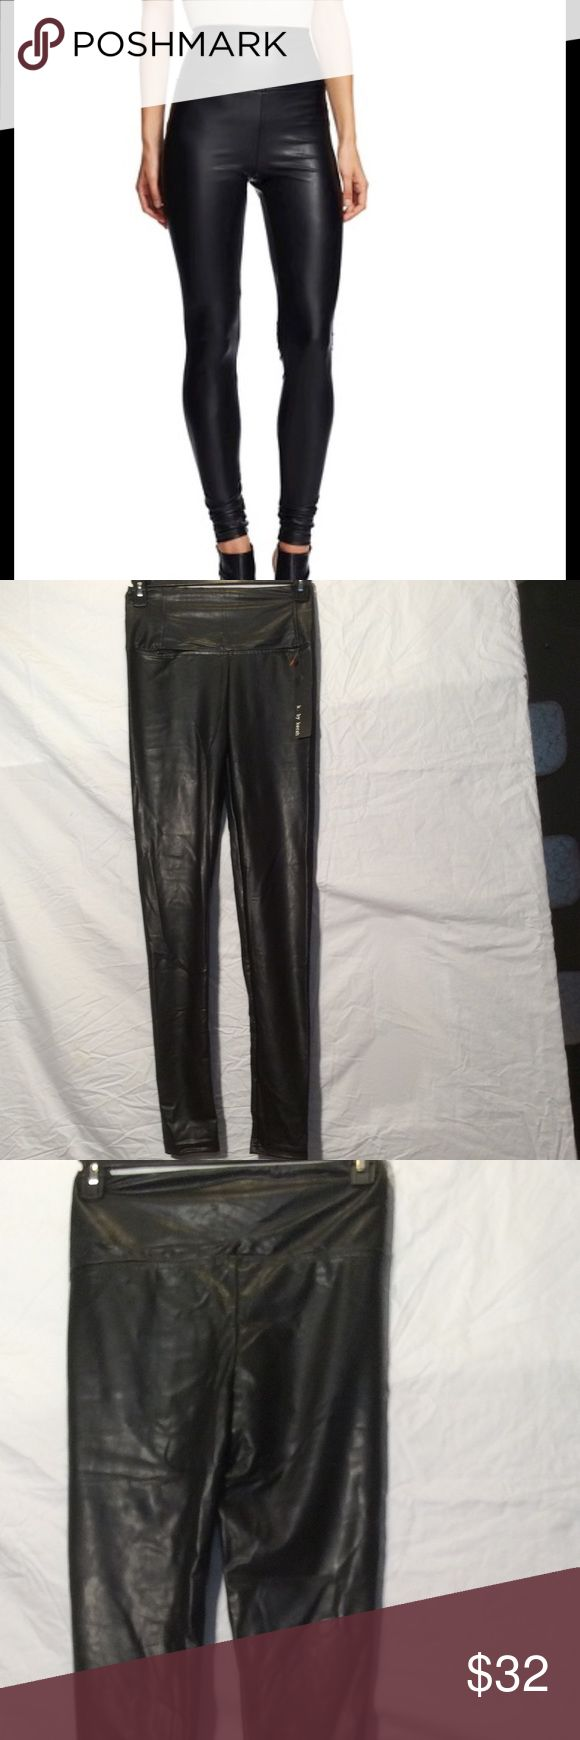 K by Kersh faux leather leggings medium NWT New with tags faux leather legging. Very supple and fitted. Size medium.  Black in color. k by kersh Pants Leggings